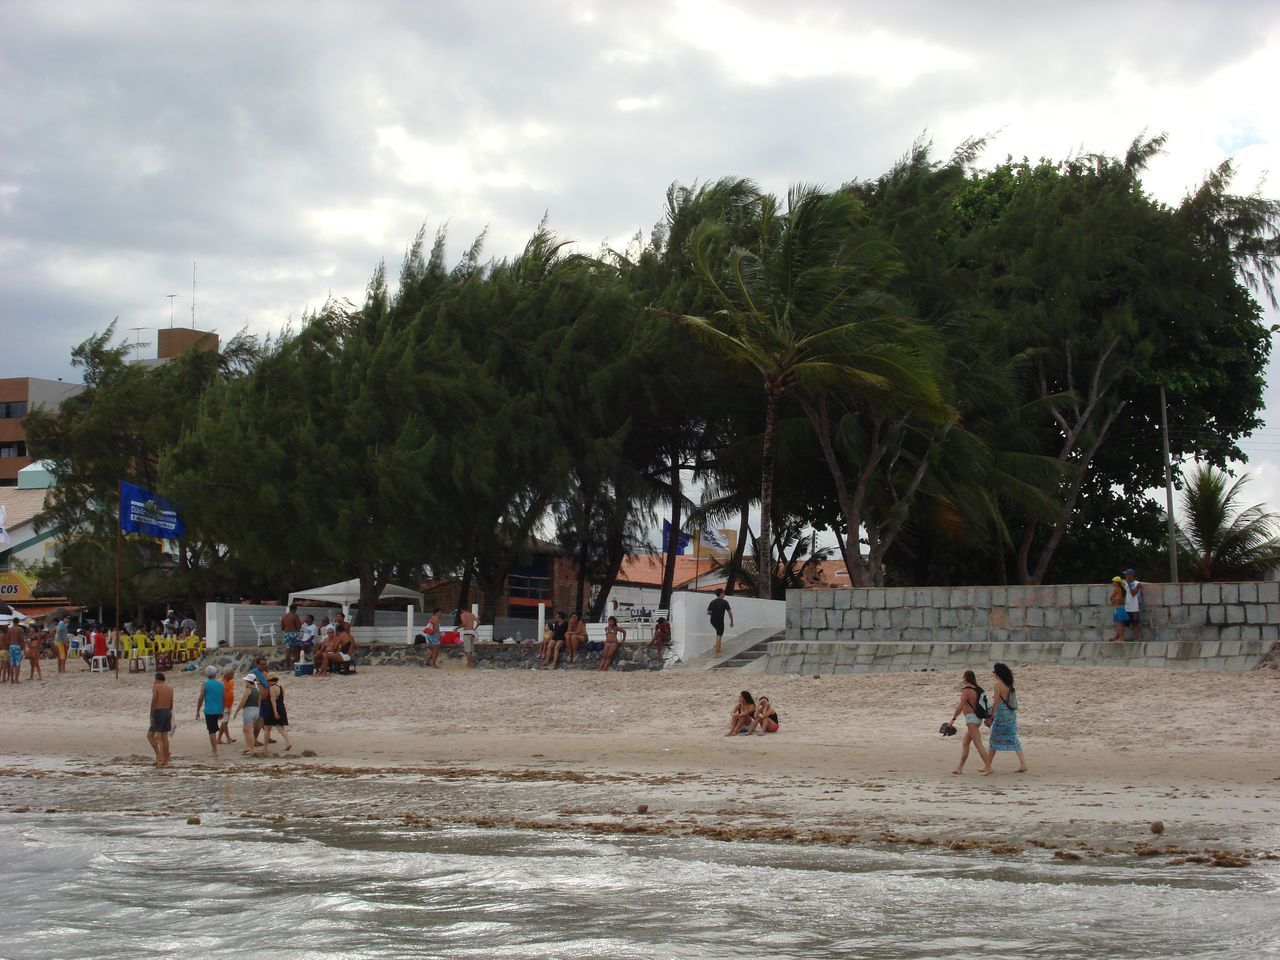 People At Beach By Trees Against Sky